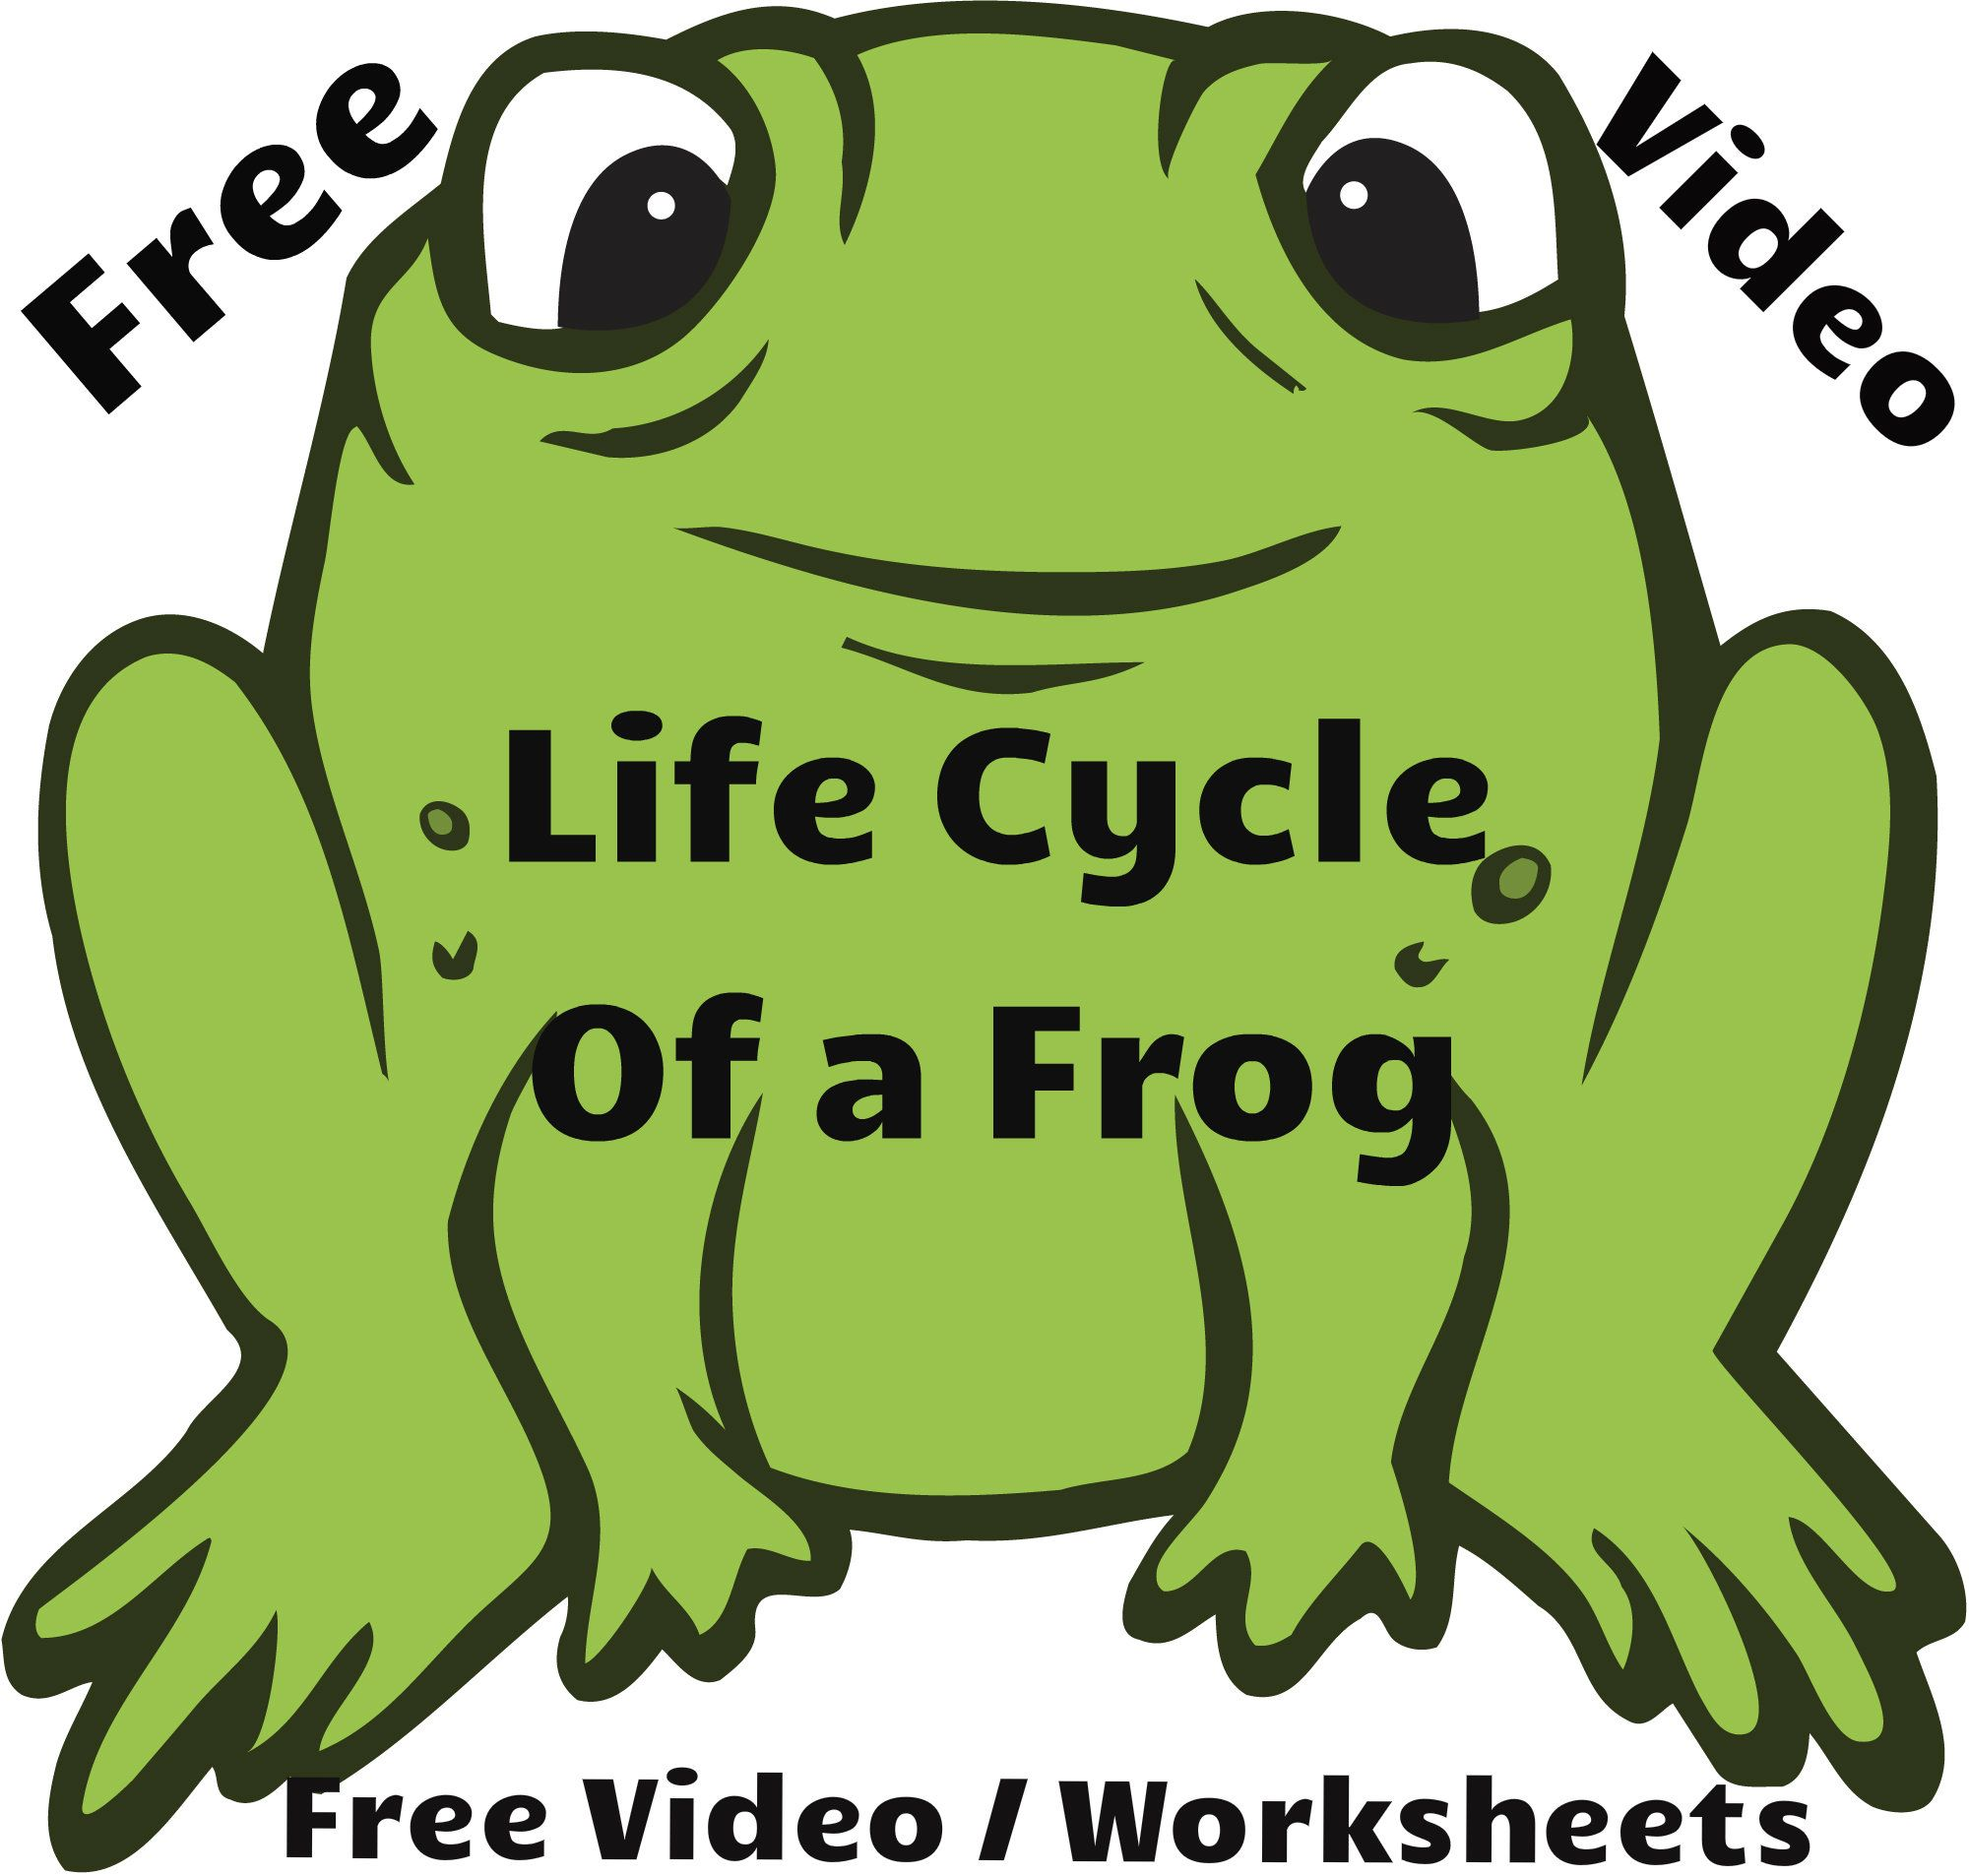 Free Video Lesson Life Cycle Of A Frog Along With The